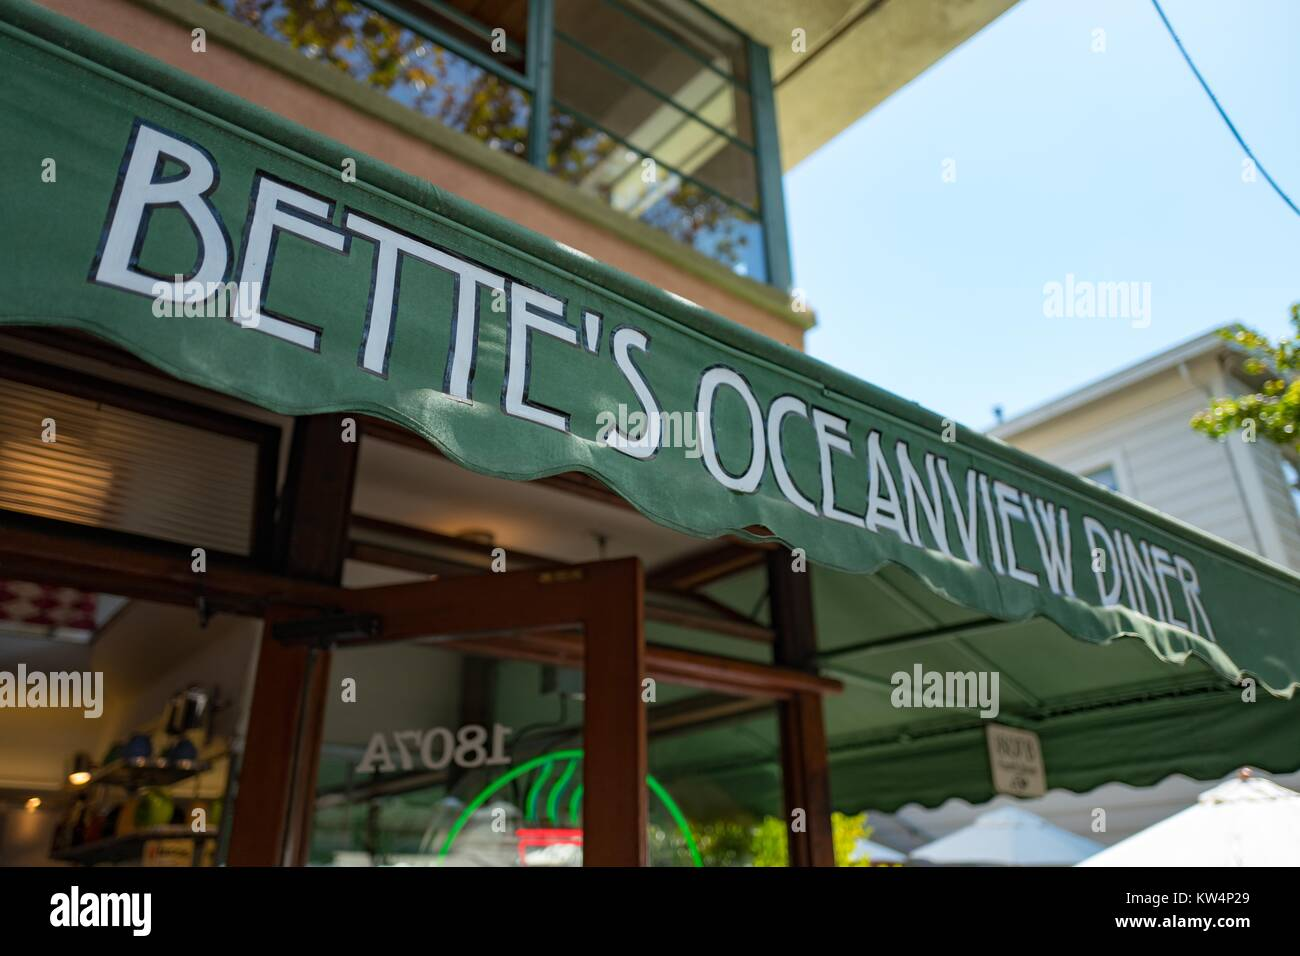 The sign and partial exterior of Bette's Oceanview Diner in the Fourth Street shopping district, Berkeley, California, - Stock Image